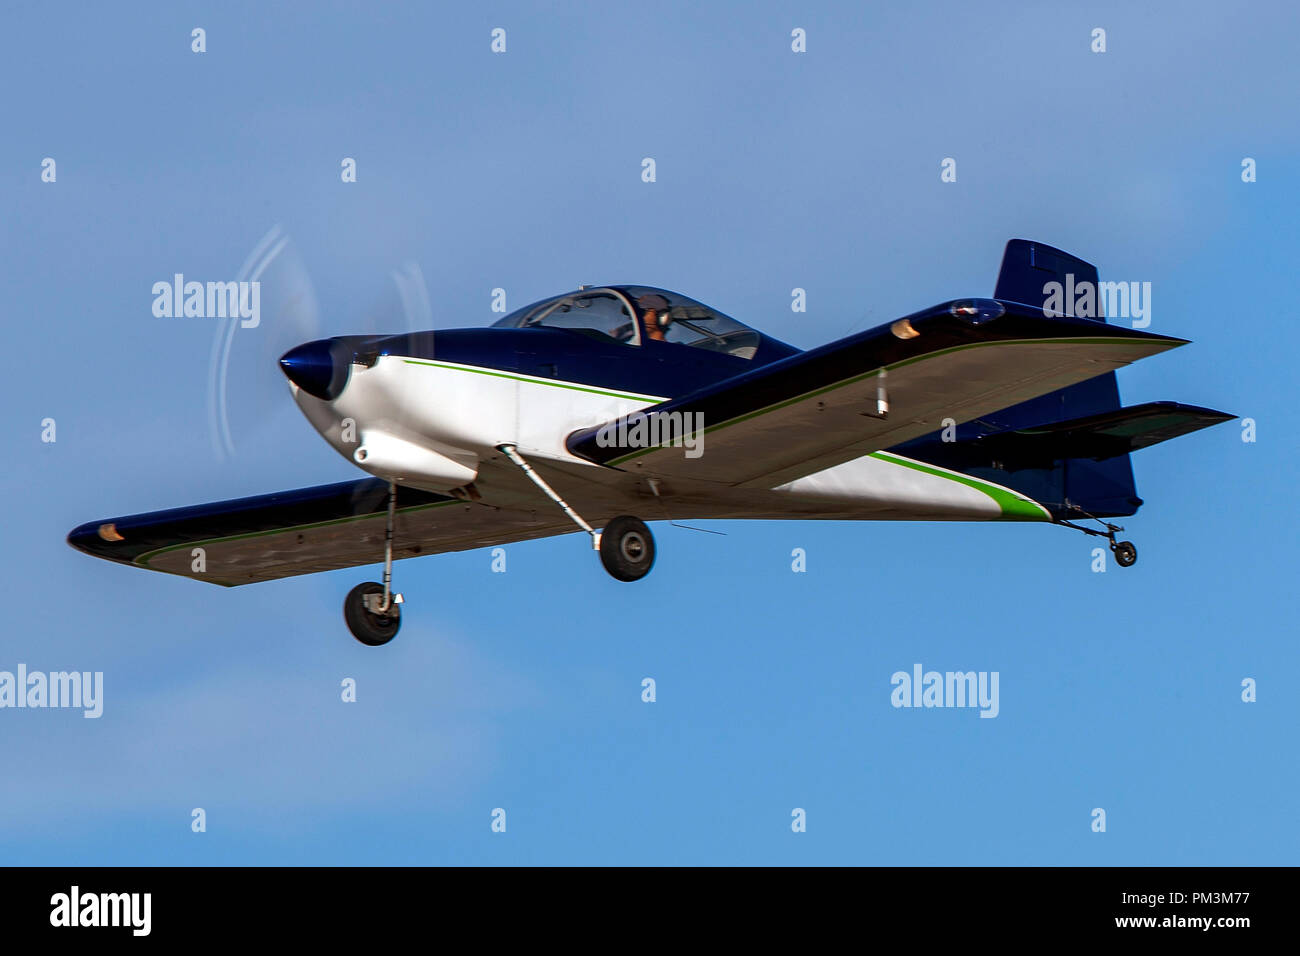 Van's Aircraft RV-7 (N611SE) taking off from Palo Alto Airport (KPAO), Palo Alto, California, United States of America - Stock Image